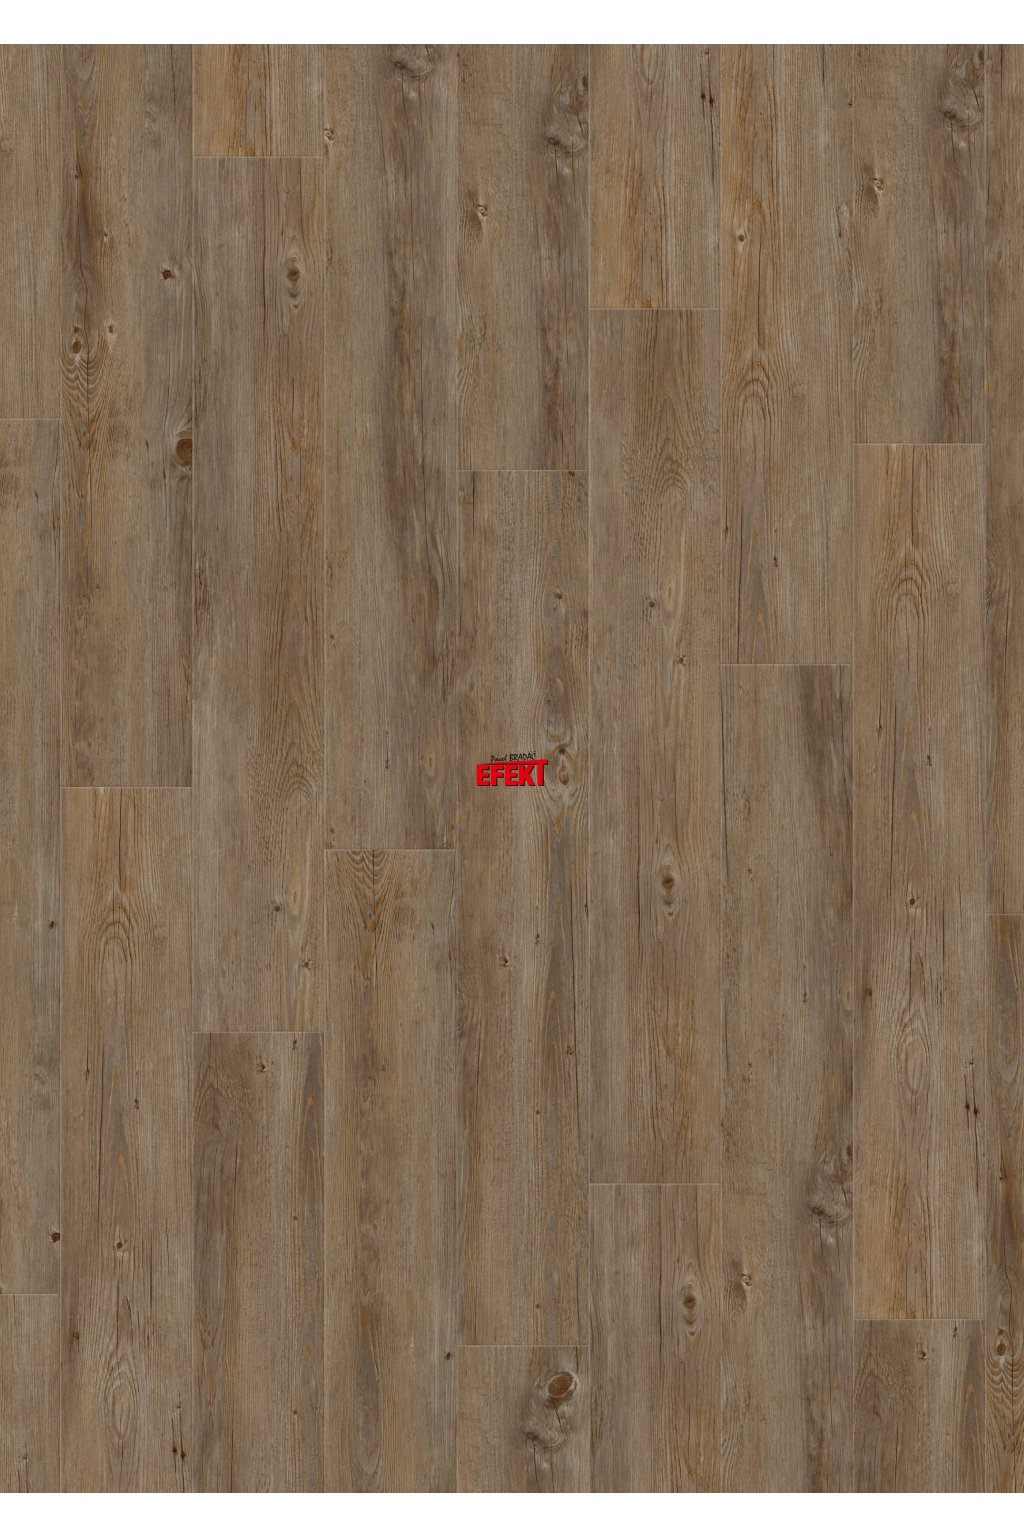 Gerflor Rigid Lock 30 Crunchy